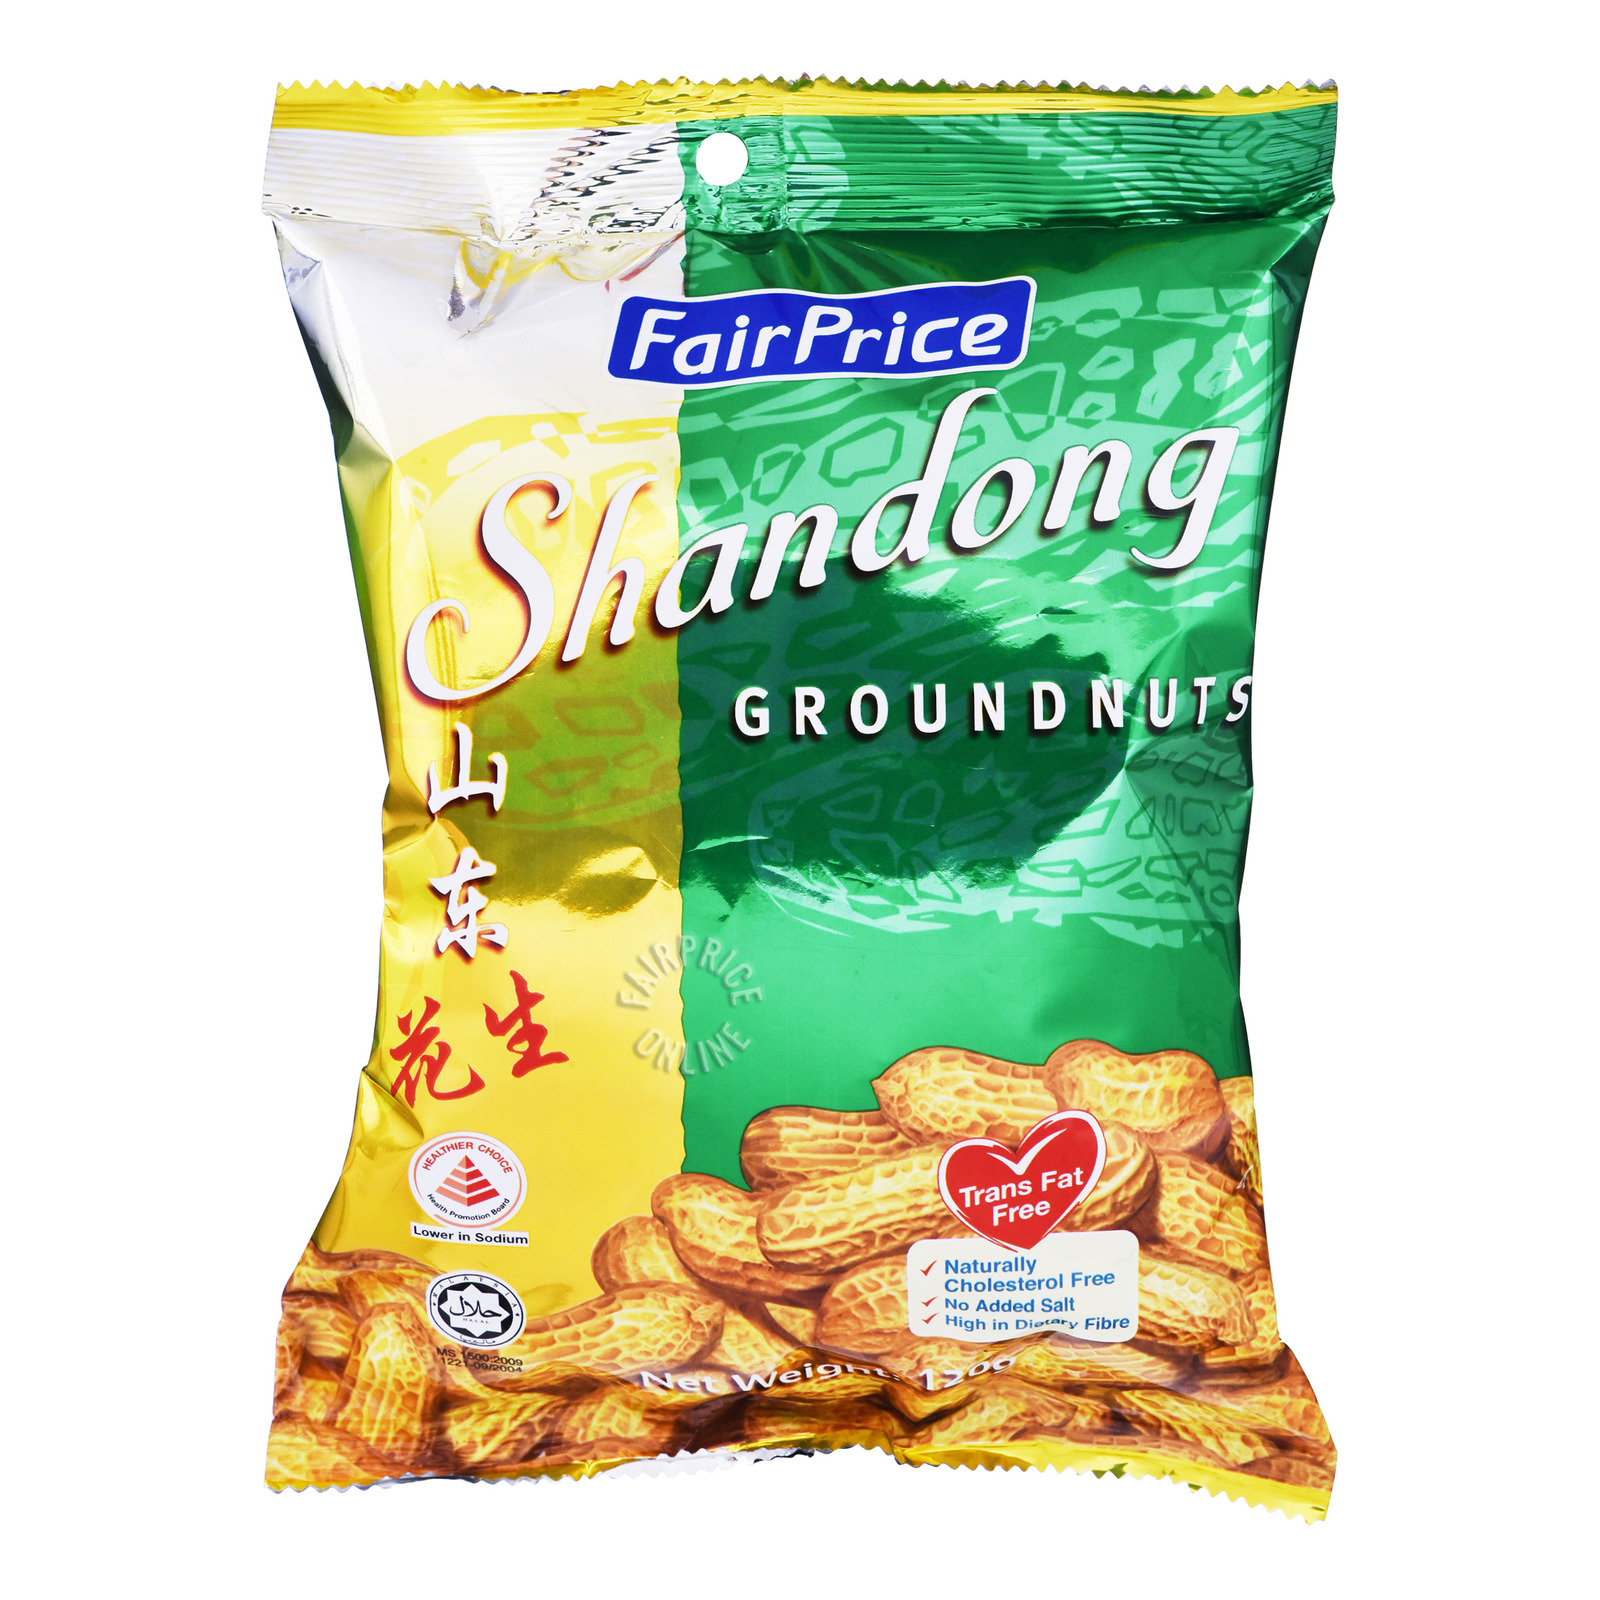 FairPrice Groundnuts - Shandong